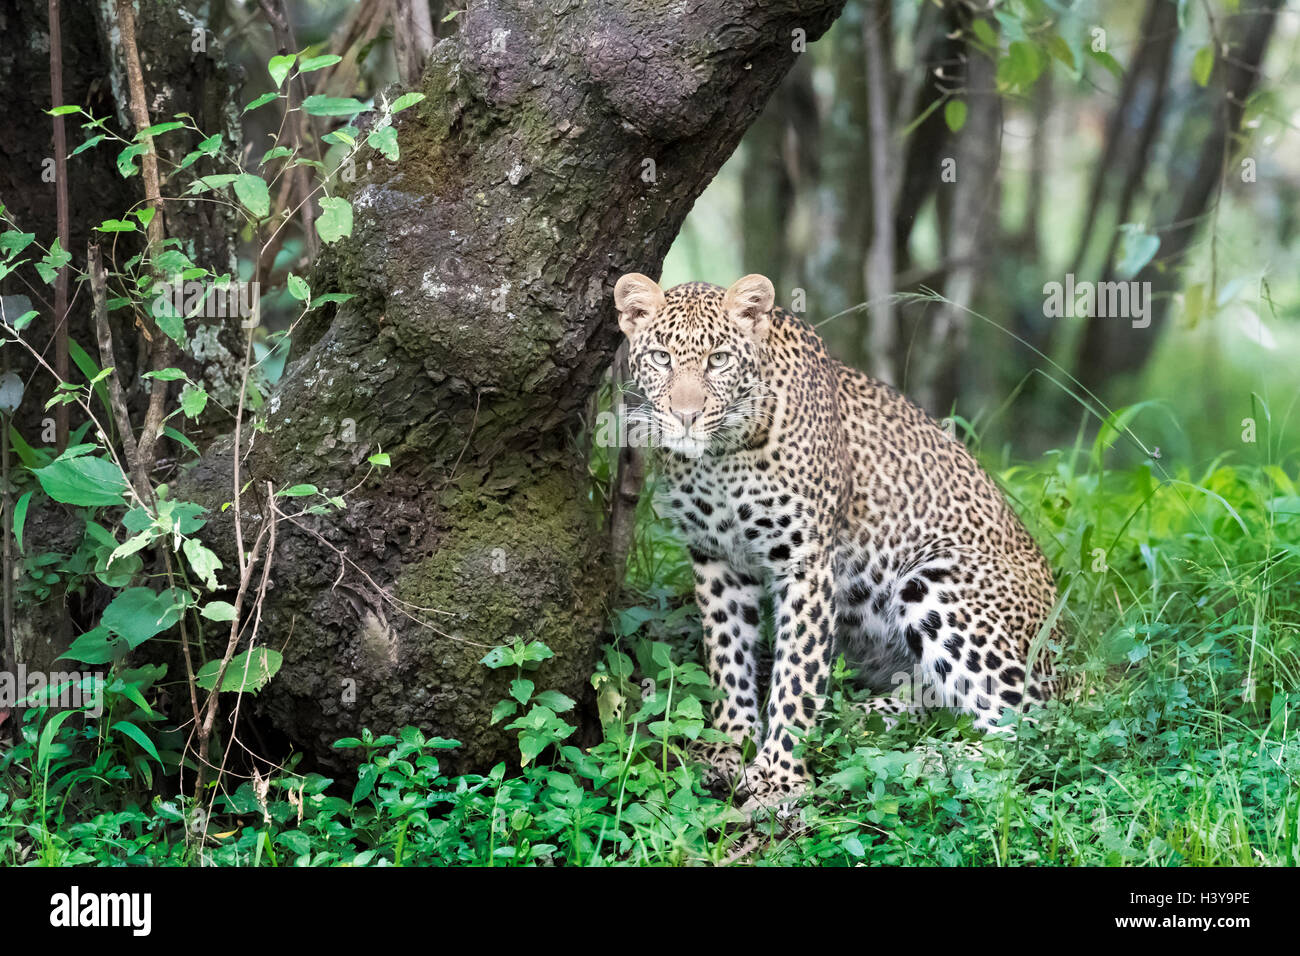 African Leopard (Panthera pardus) sitting in forest, looking at camera, Masai Mara national reserve, Kenya. - Stock Image